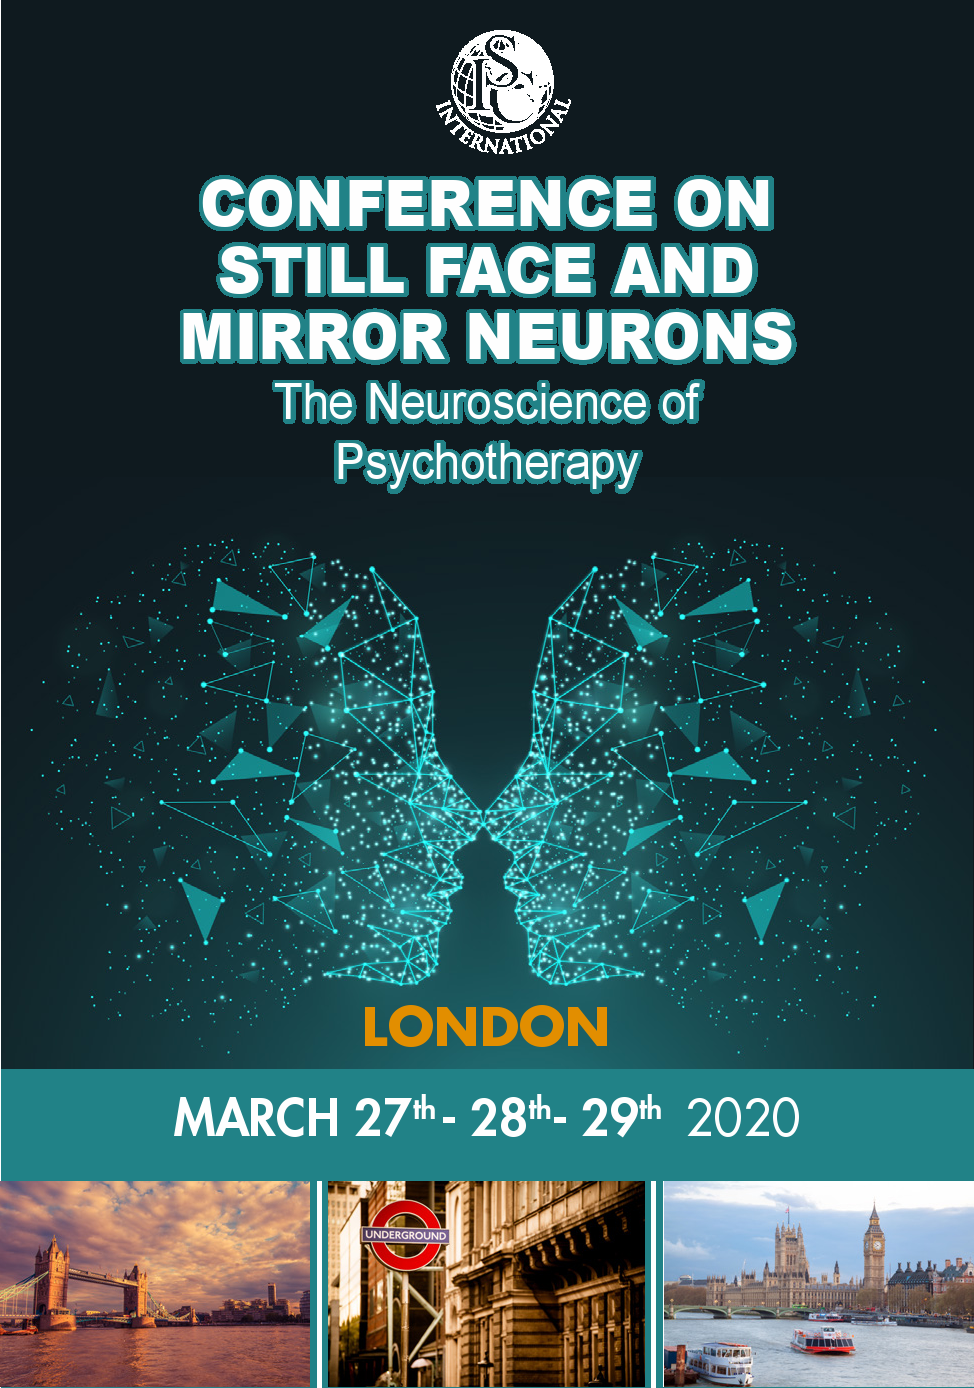 CONFERENCE Still face and Mirror Neurons LONDON marzo 2020 10001